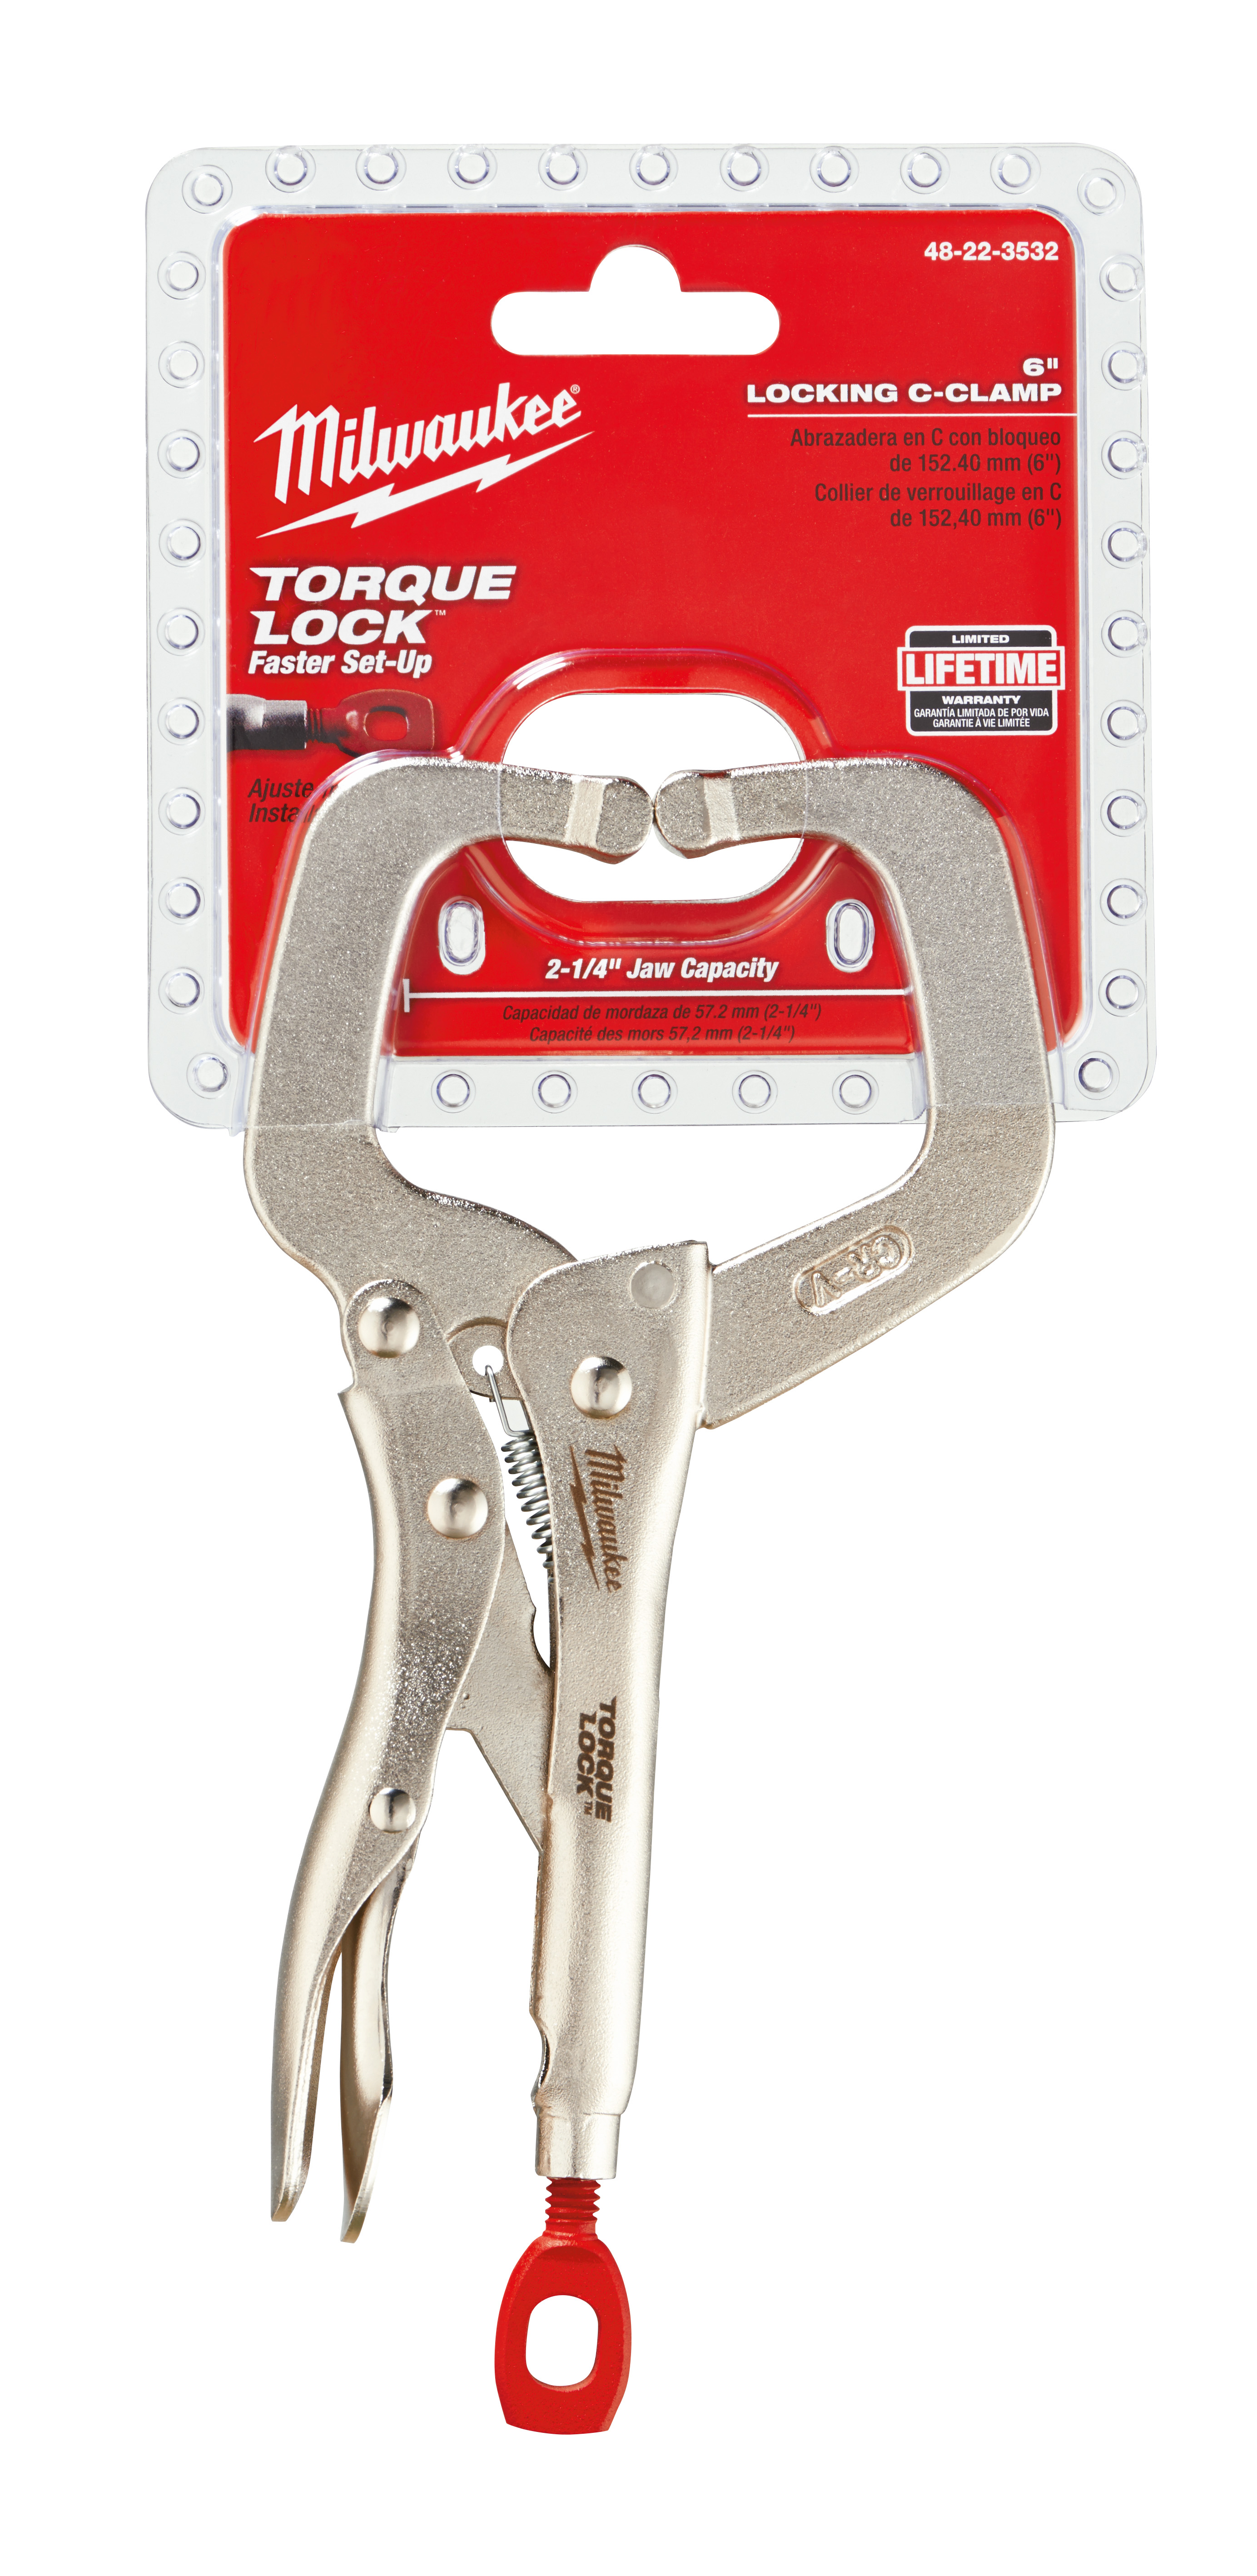 Milwaukee® 48-22-3532 TORQUE LOCK™ Regular Jaw Locking C-Clamp, Polished Chrome, 2-1/4 in D Throat, 1/2 in Jaw Opening, 6 in Jaw, Forged Alloy Steel